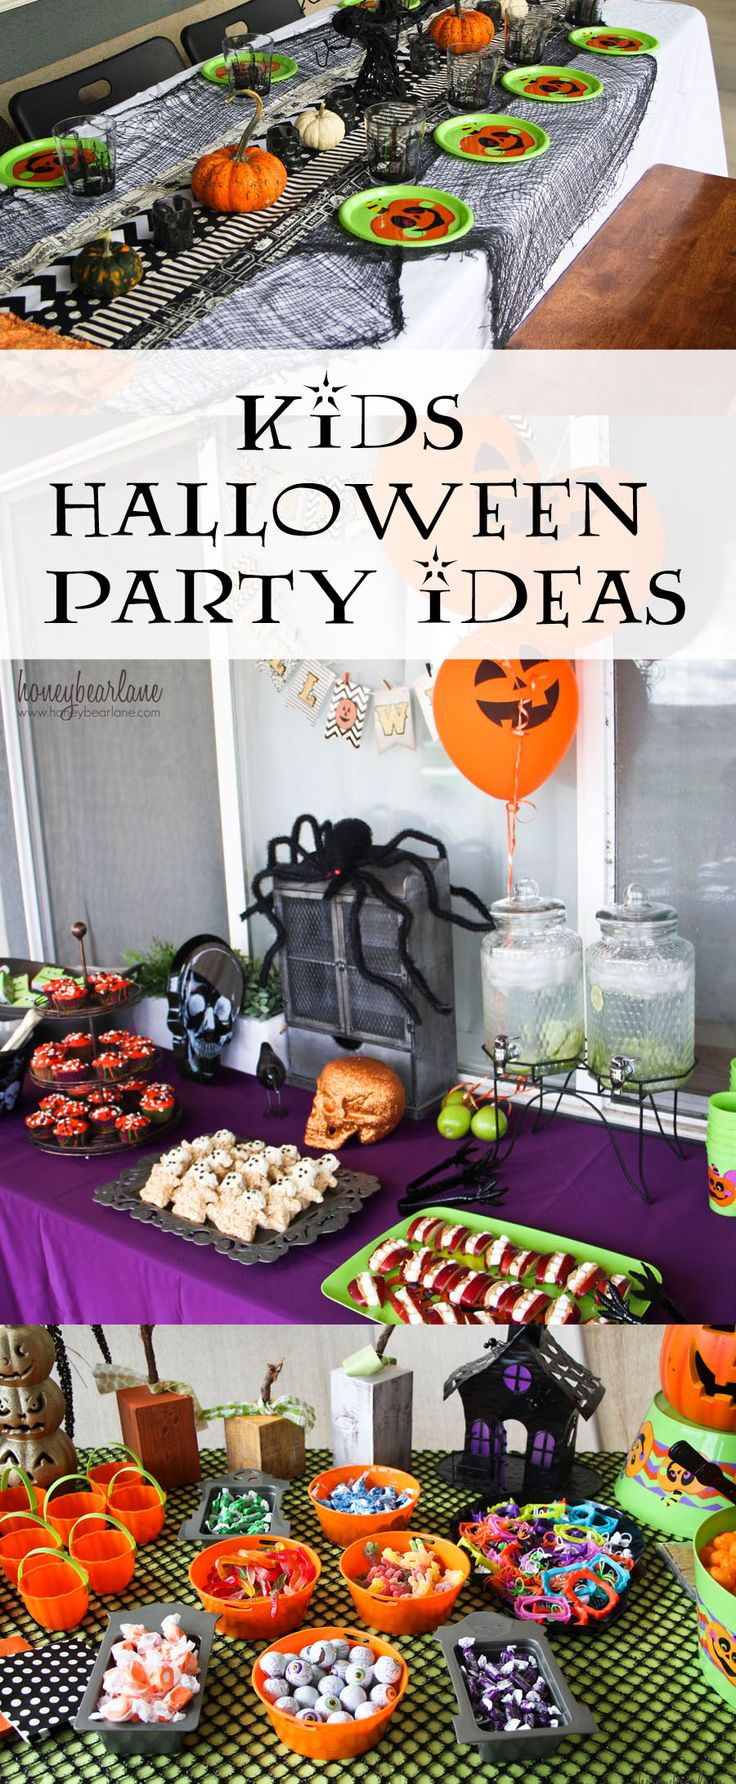 Halloween birthday party decorations - Kids Halloween Party Ideas